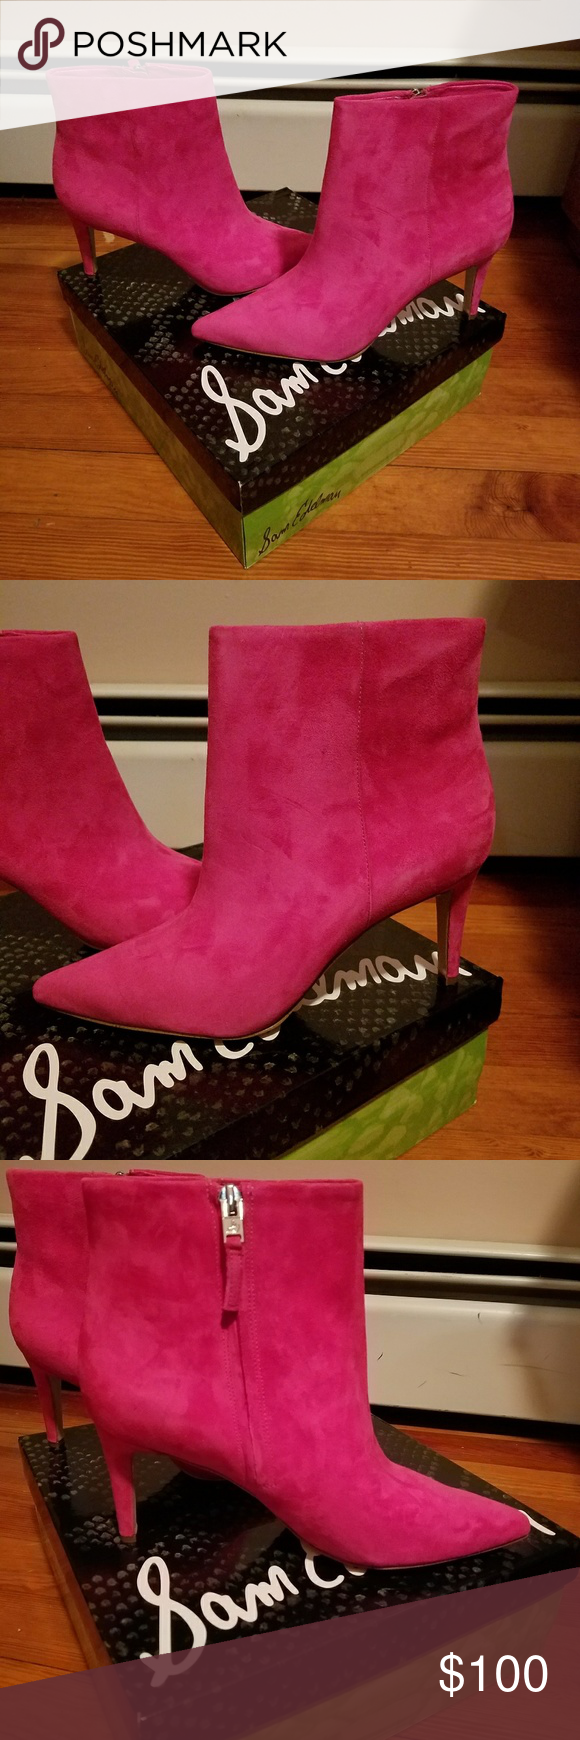 29e1617c8573b0 Sam Edelman pink suede Karen bootie Brand new in box pink suede Sam Edelman  booties. They are stunning and will make statement when you wear them!